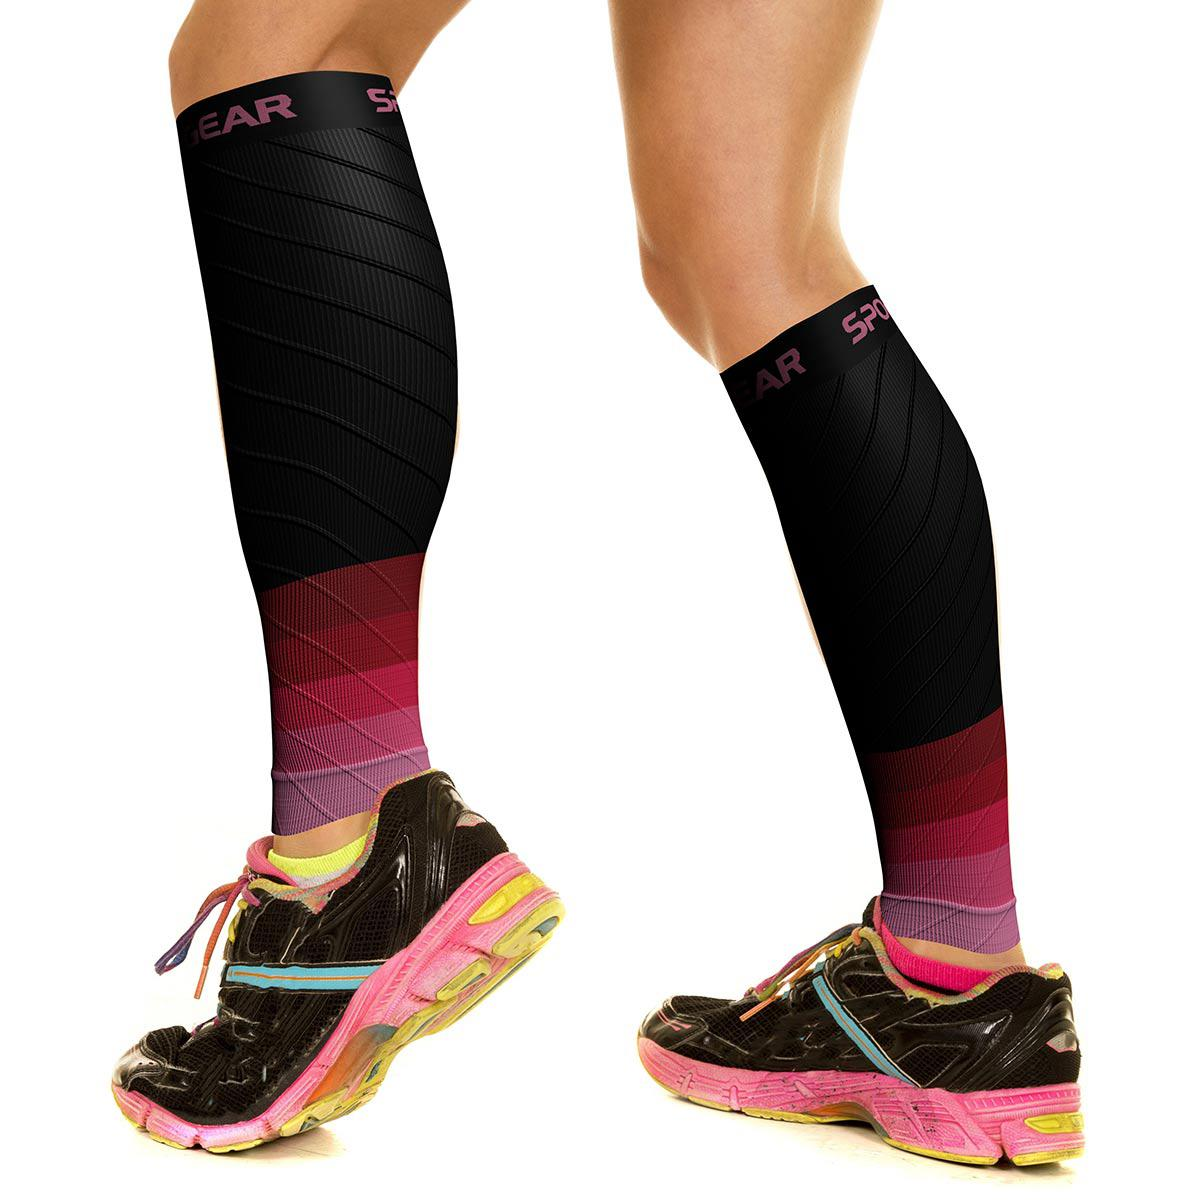 Calf Sleeves - Black & Pink (1 Pair)-Physix Gear Sport